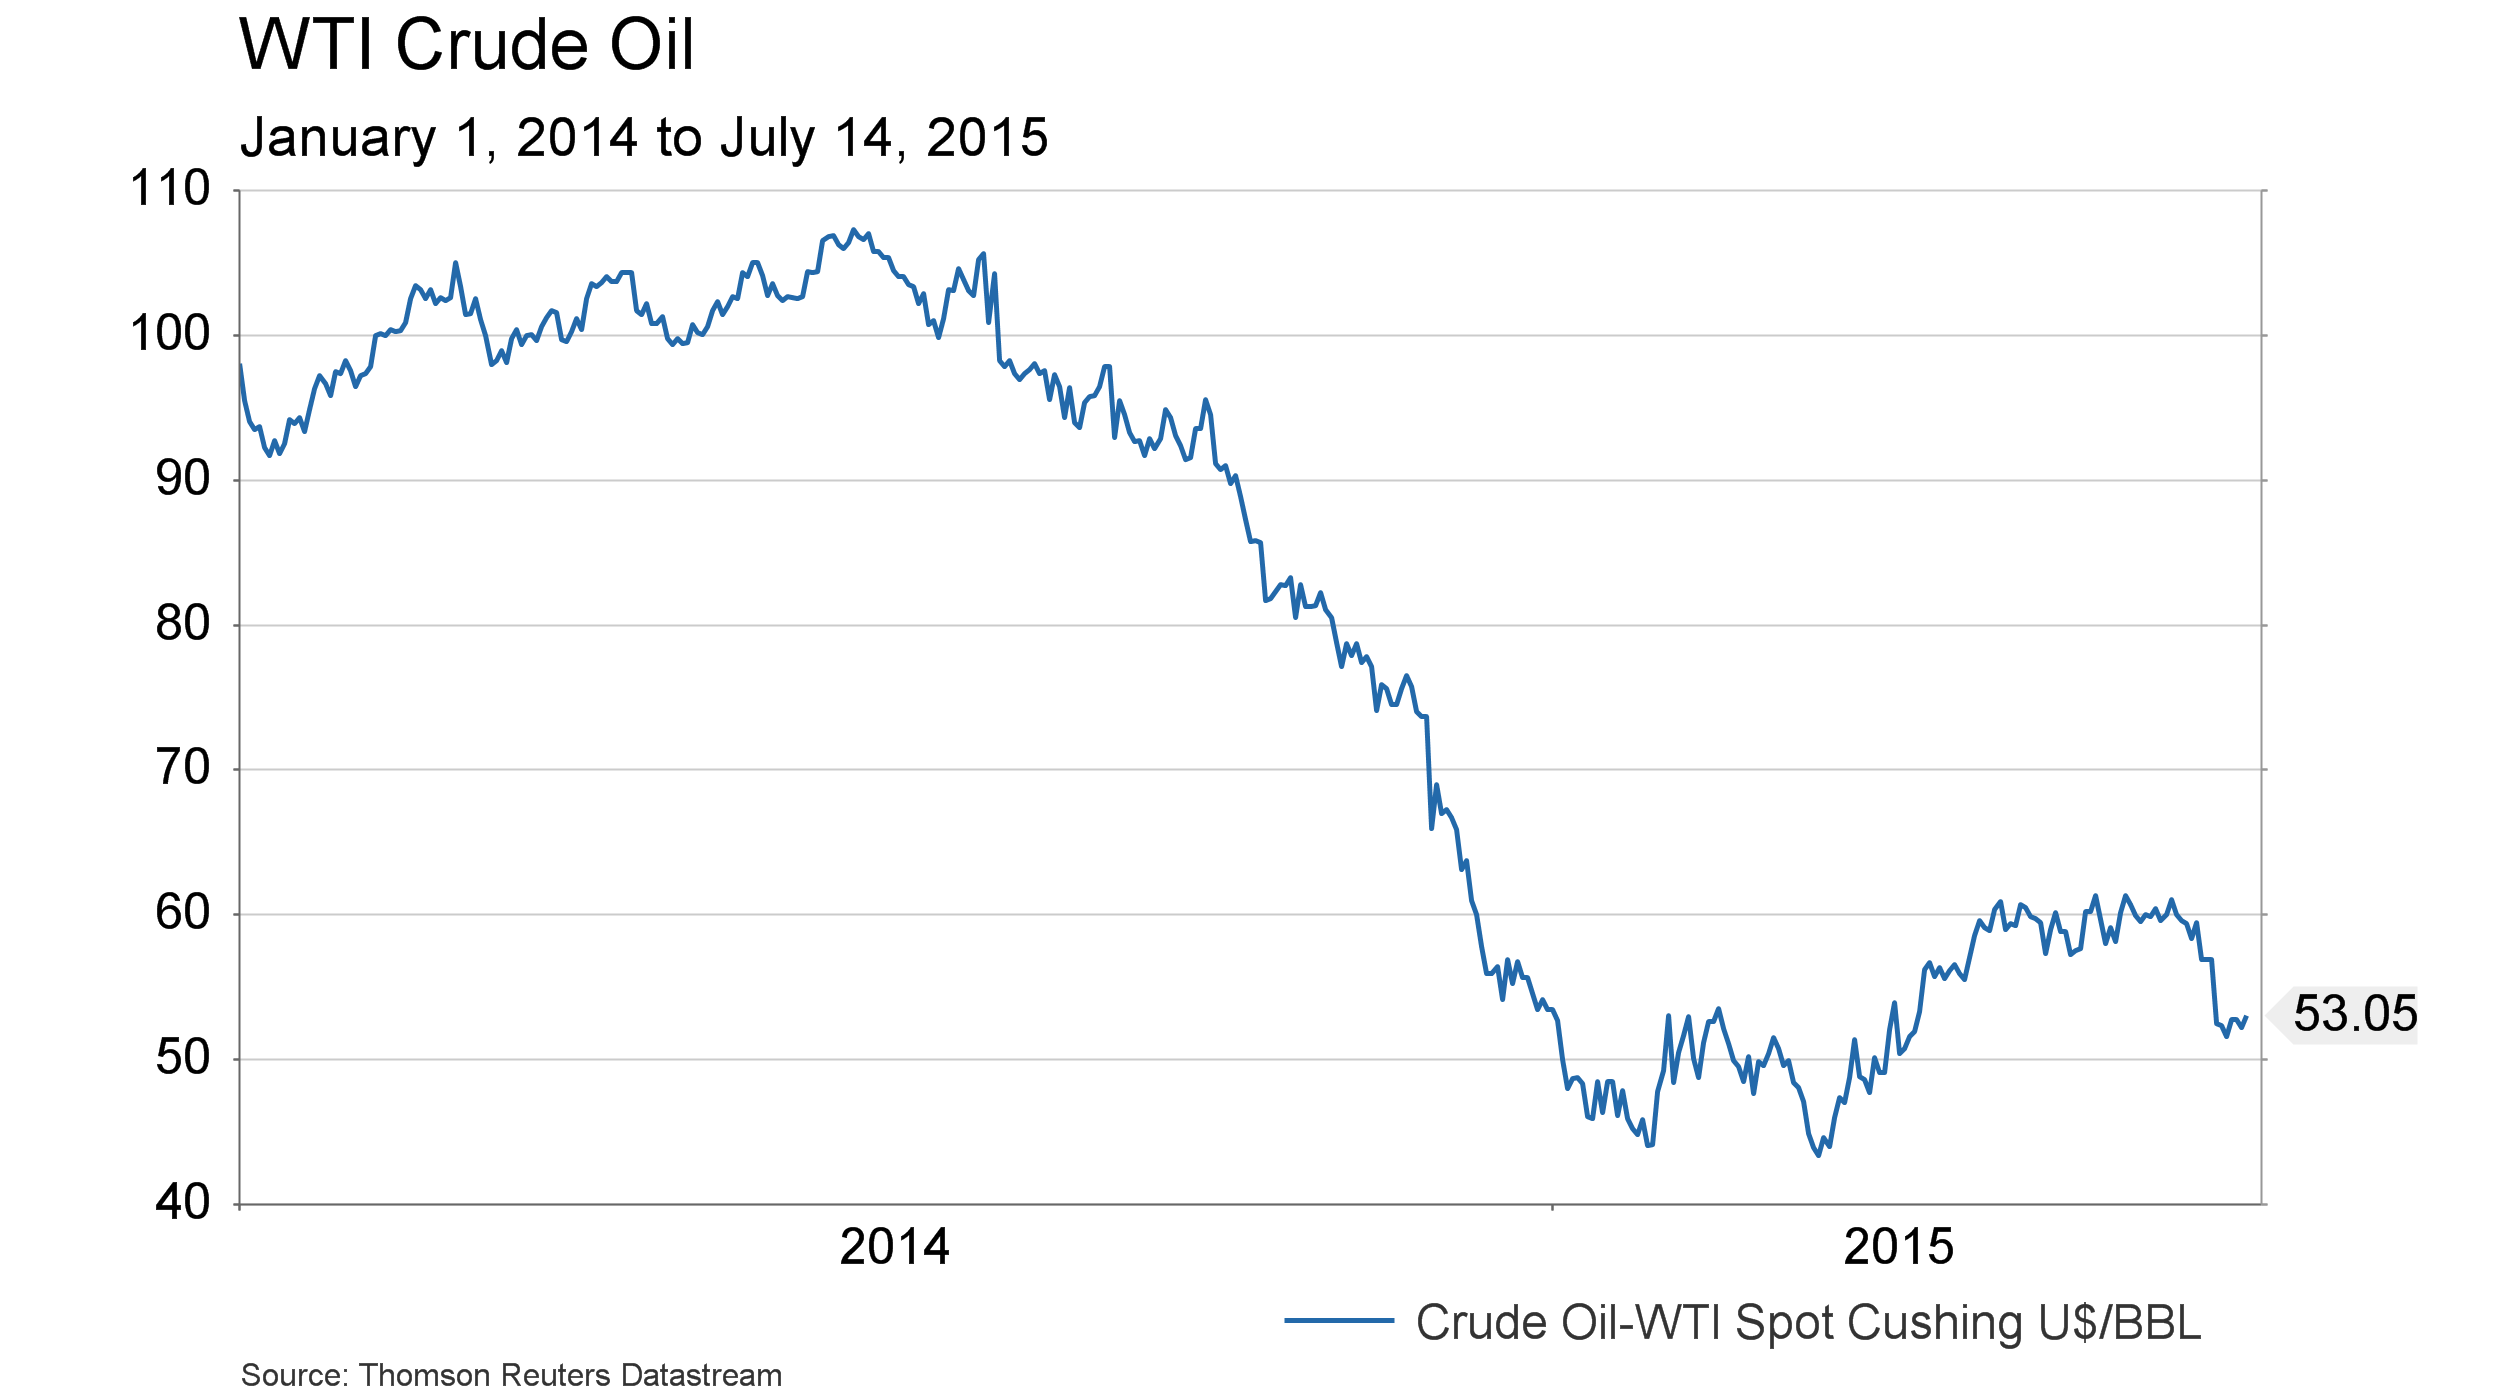 July 14, 2015 - WTI since Jan 1, 2014